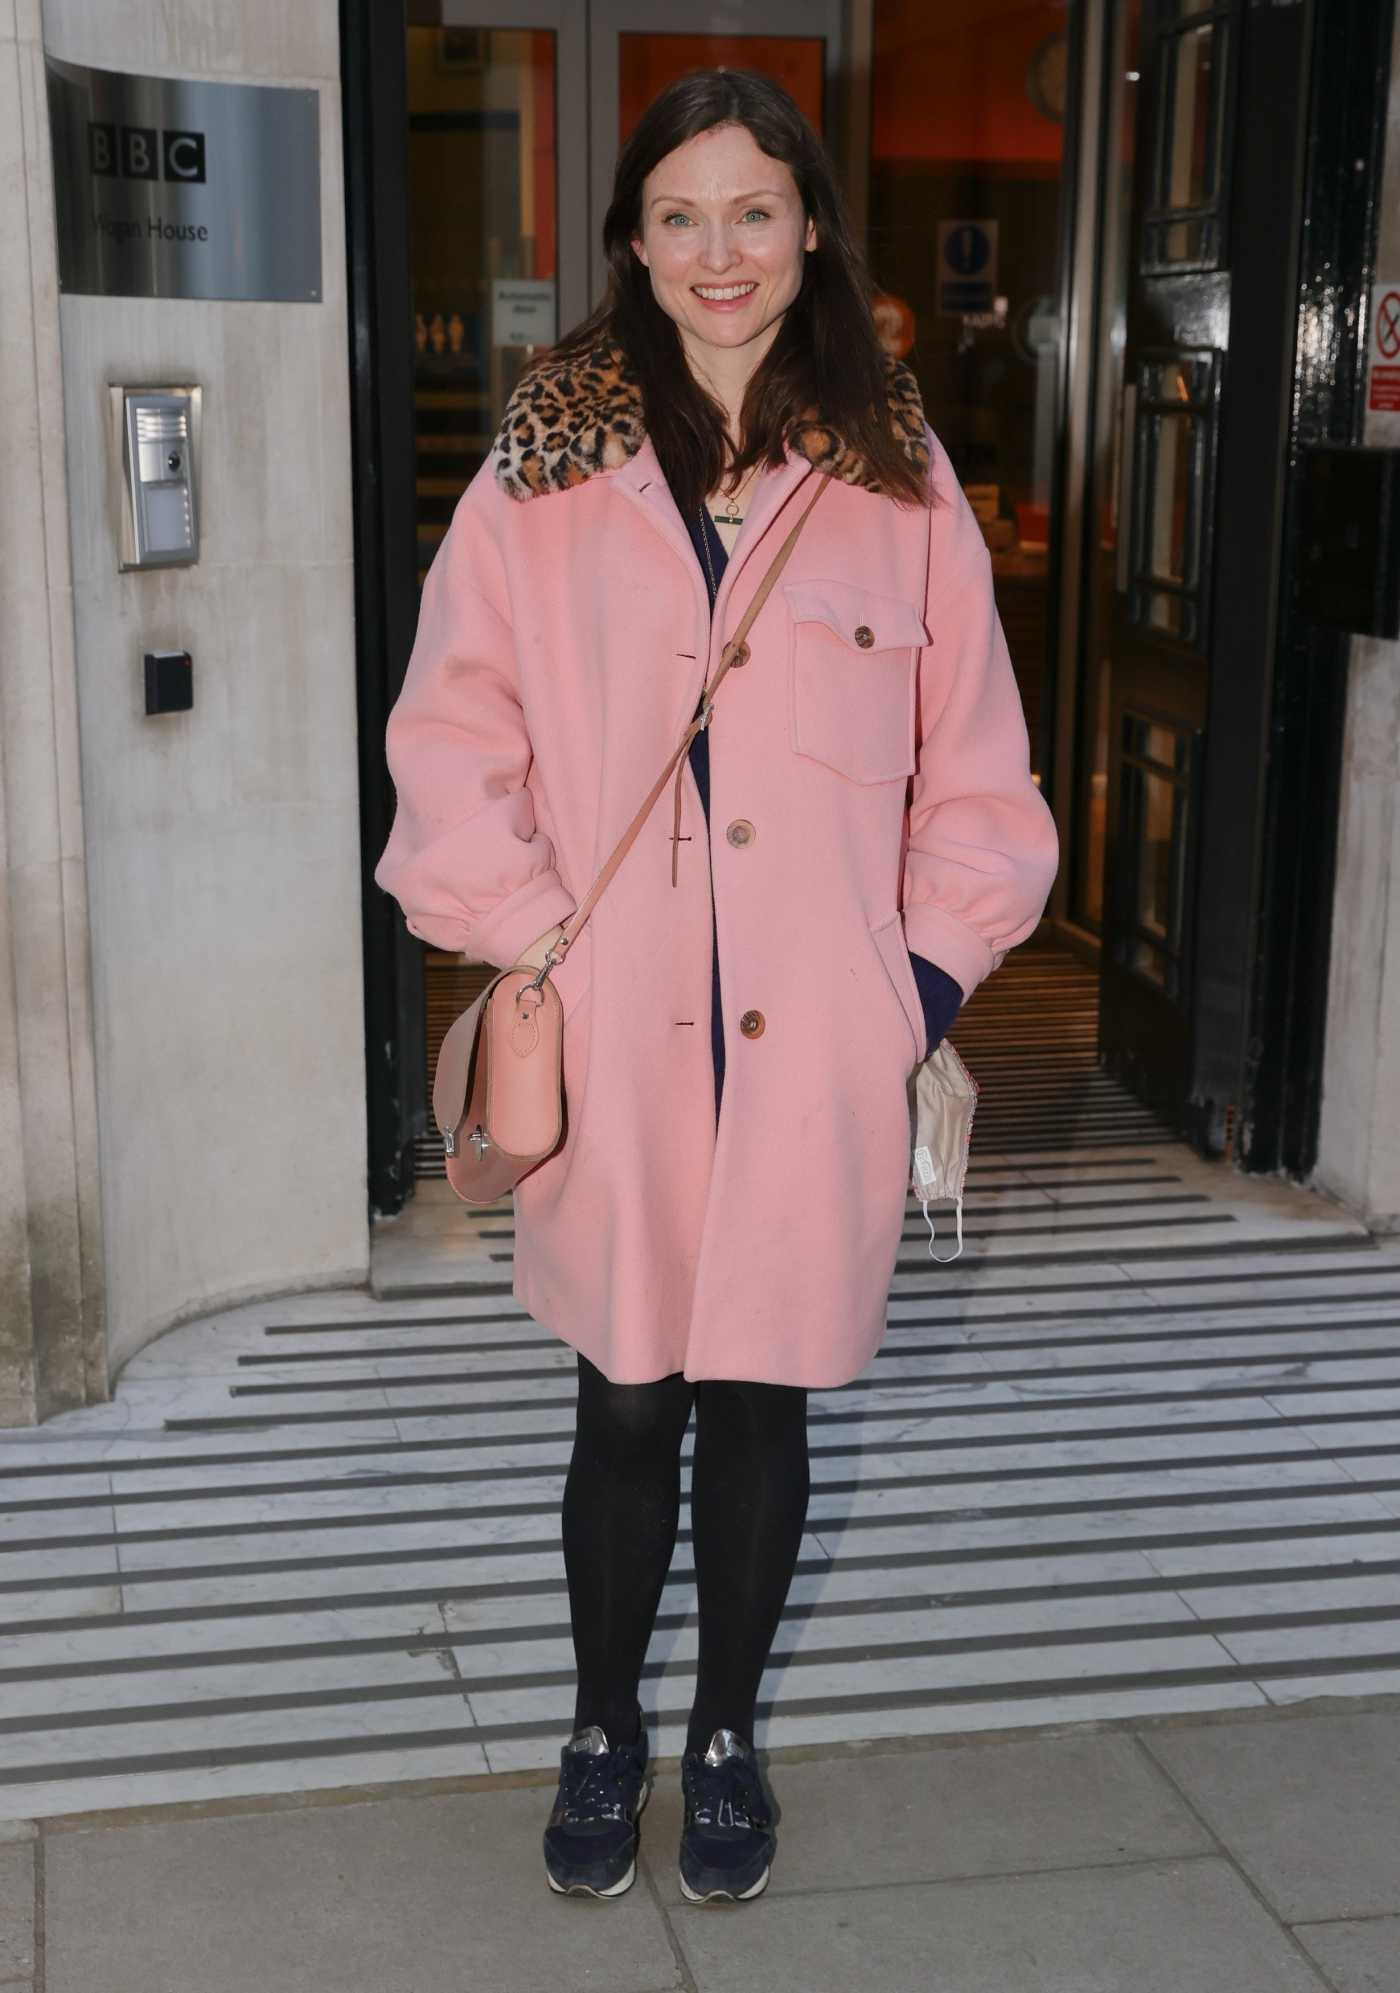 Sophie Ellis-Bextor in a Pink Coat Arrives at BBC Radio 2 in London 04/05/2021